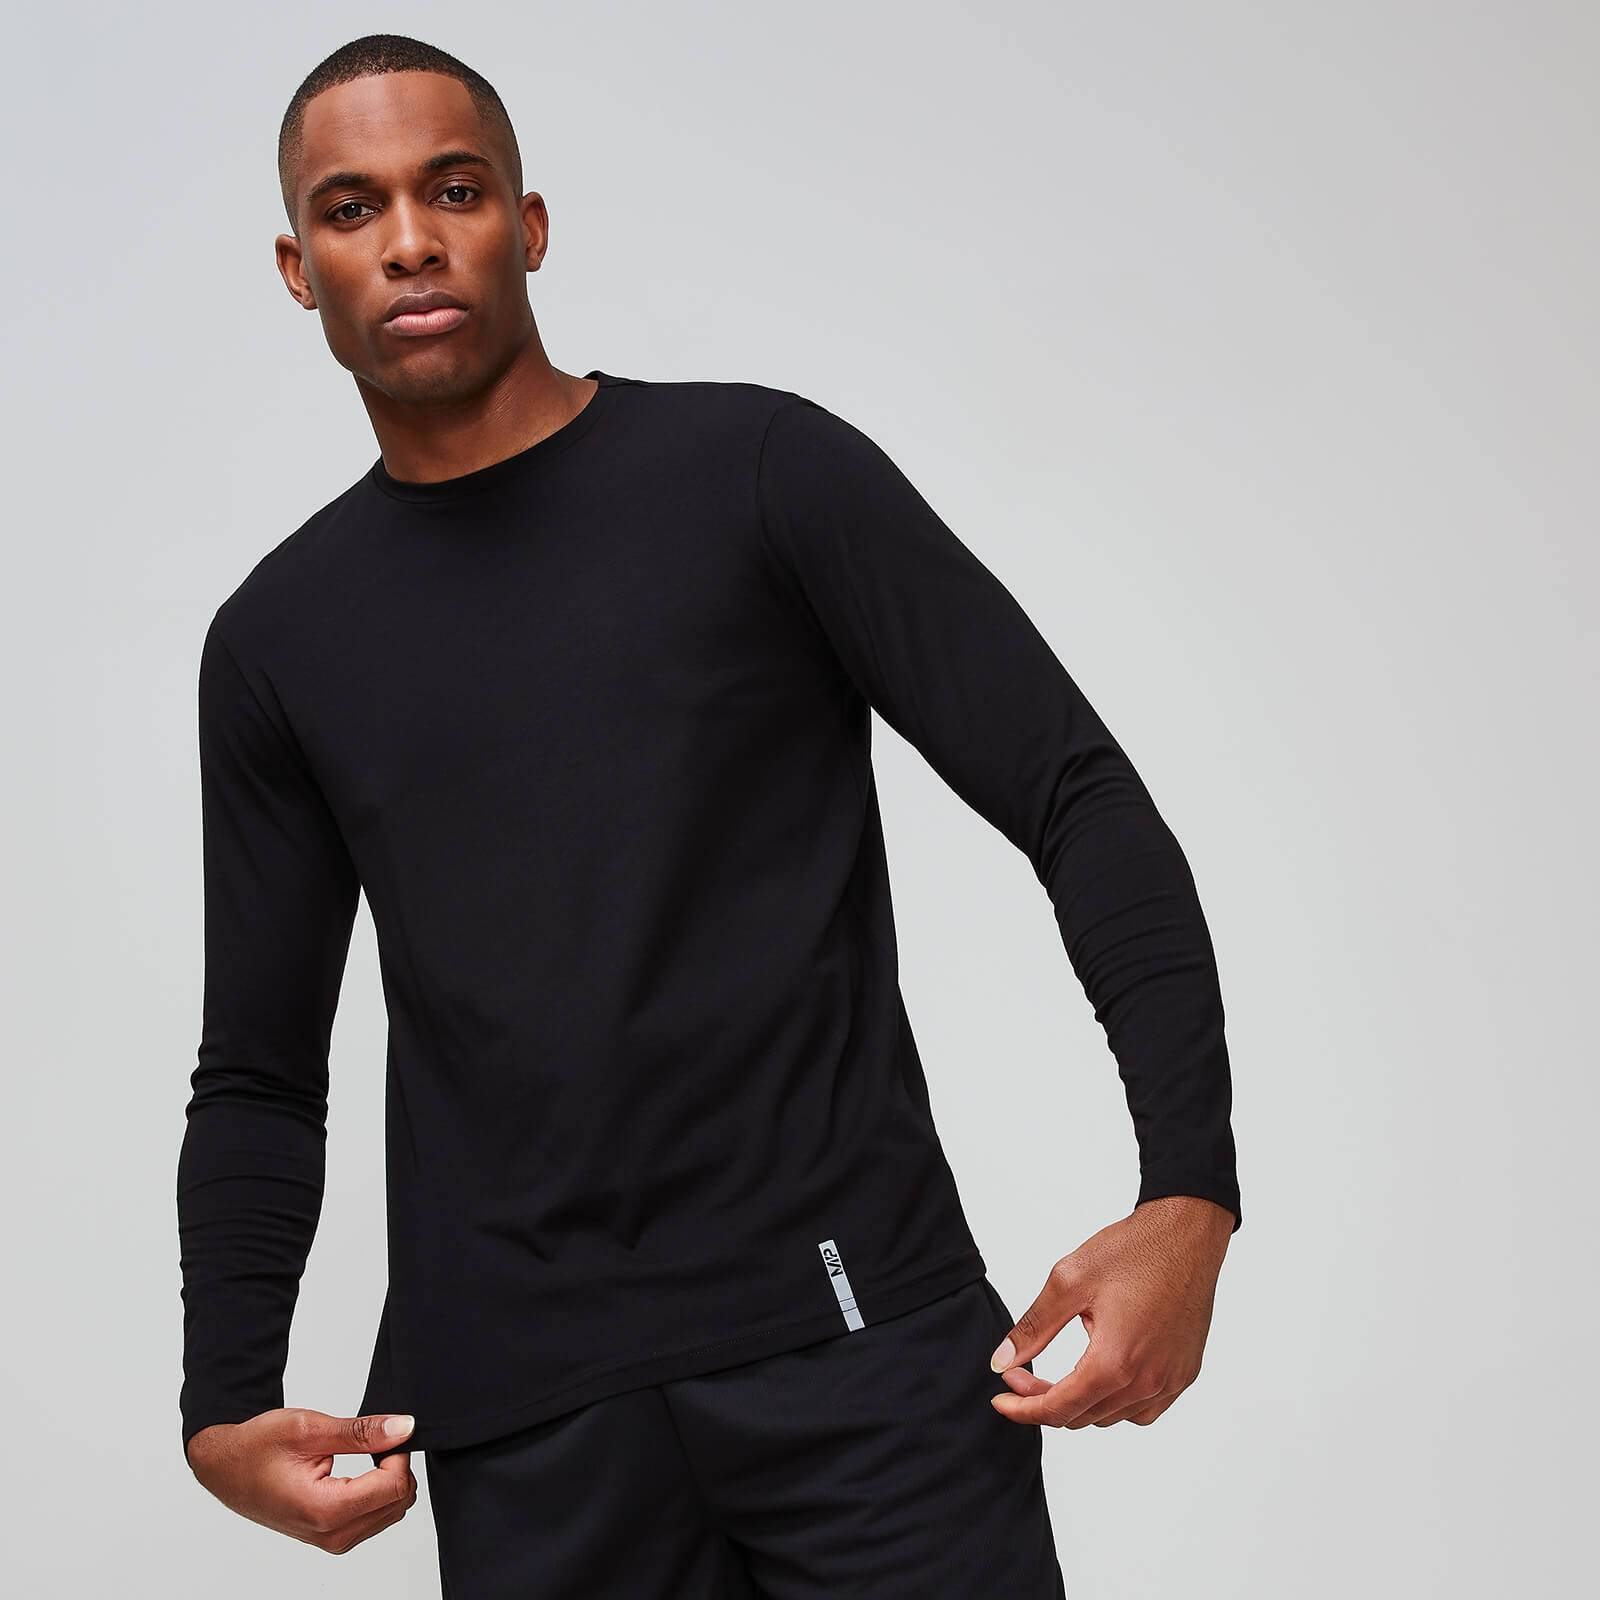 Myprotein Luxe Classic Long-Sleeve Crew - Black - XL